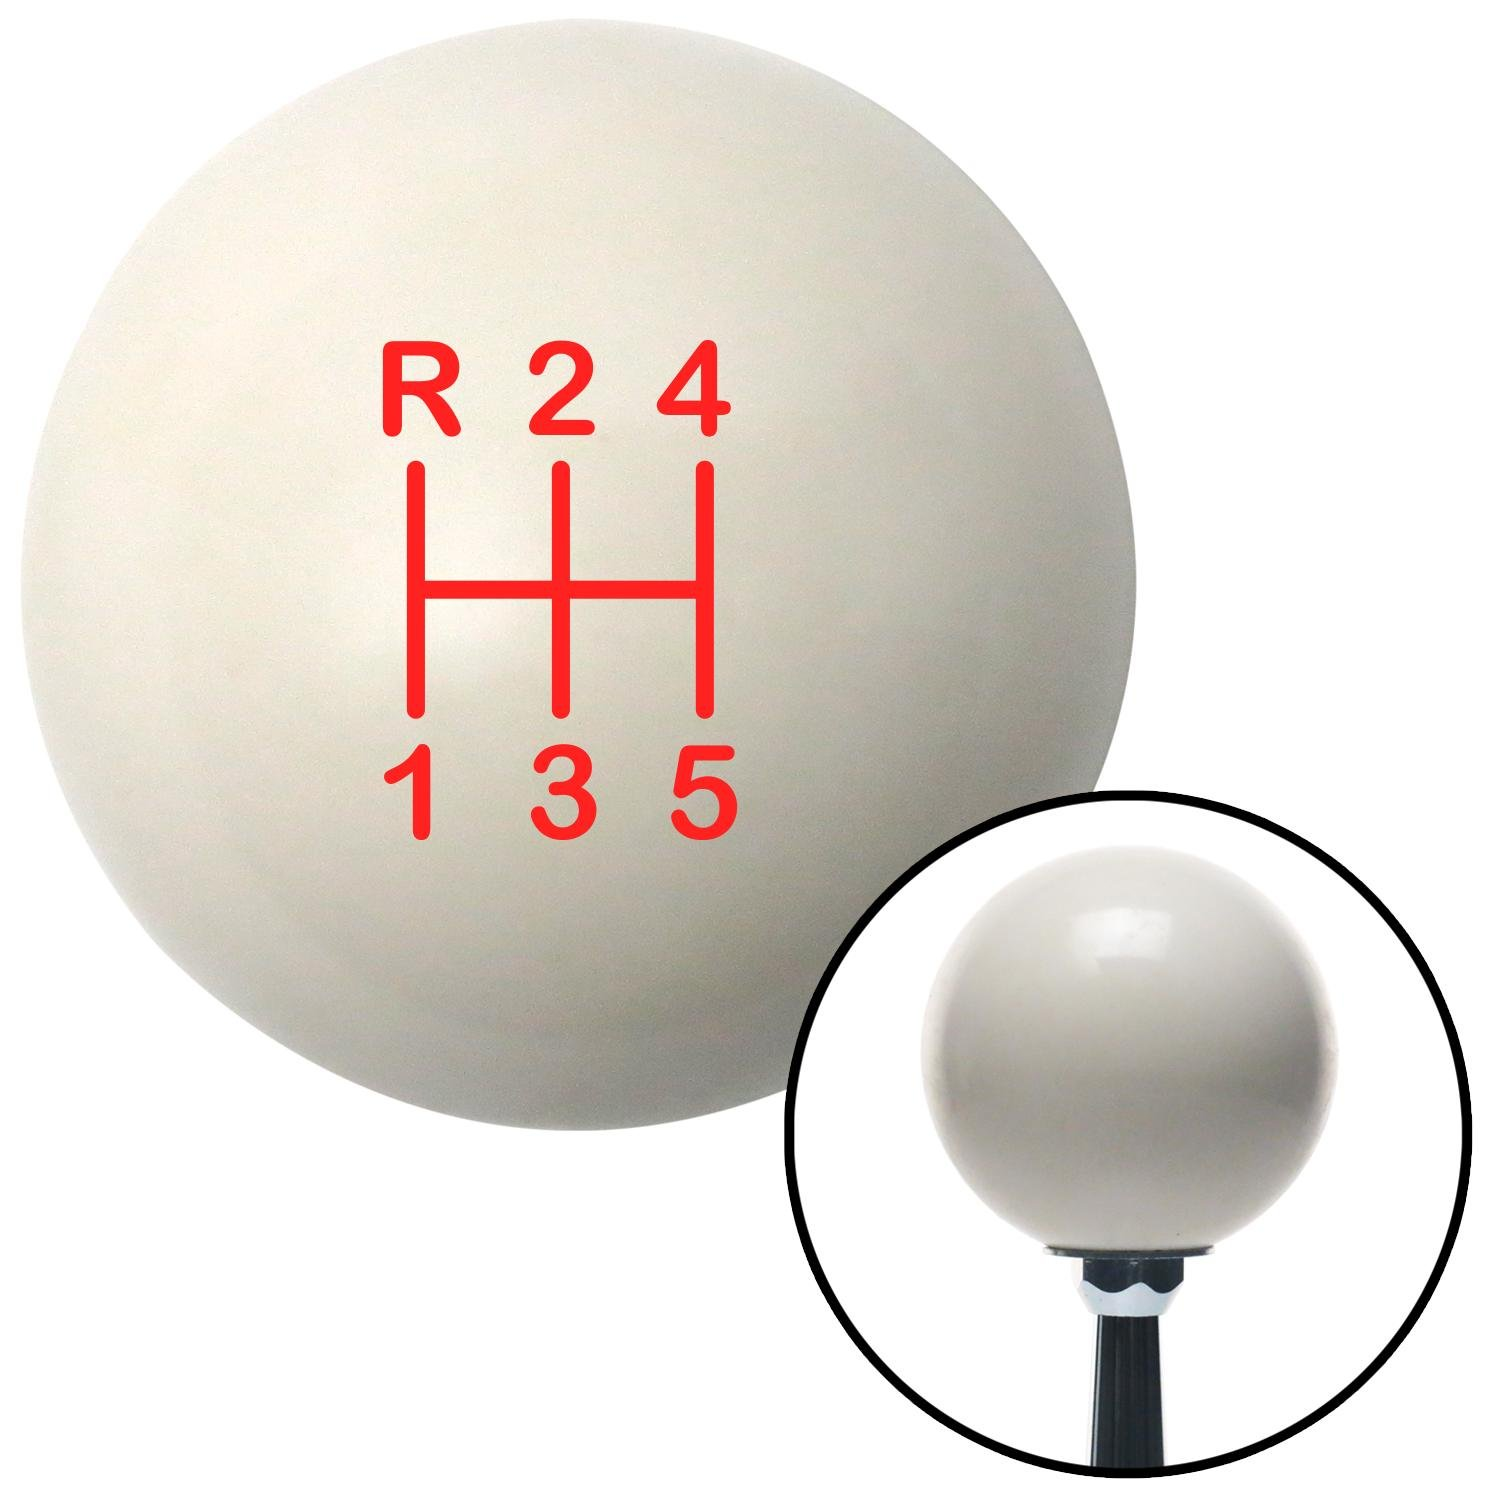 Red Shift Pattern 45n American Shifter 76653 Ivory Shift Knob with M16 x 1.5 Insert